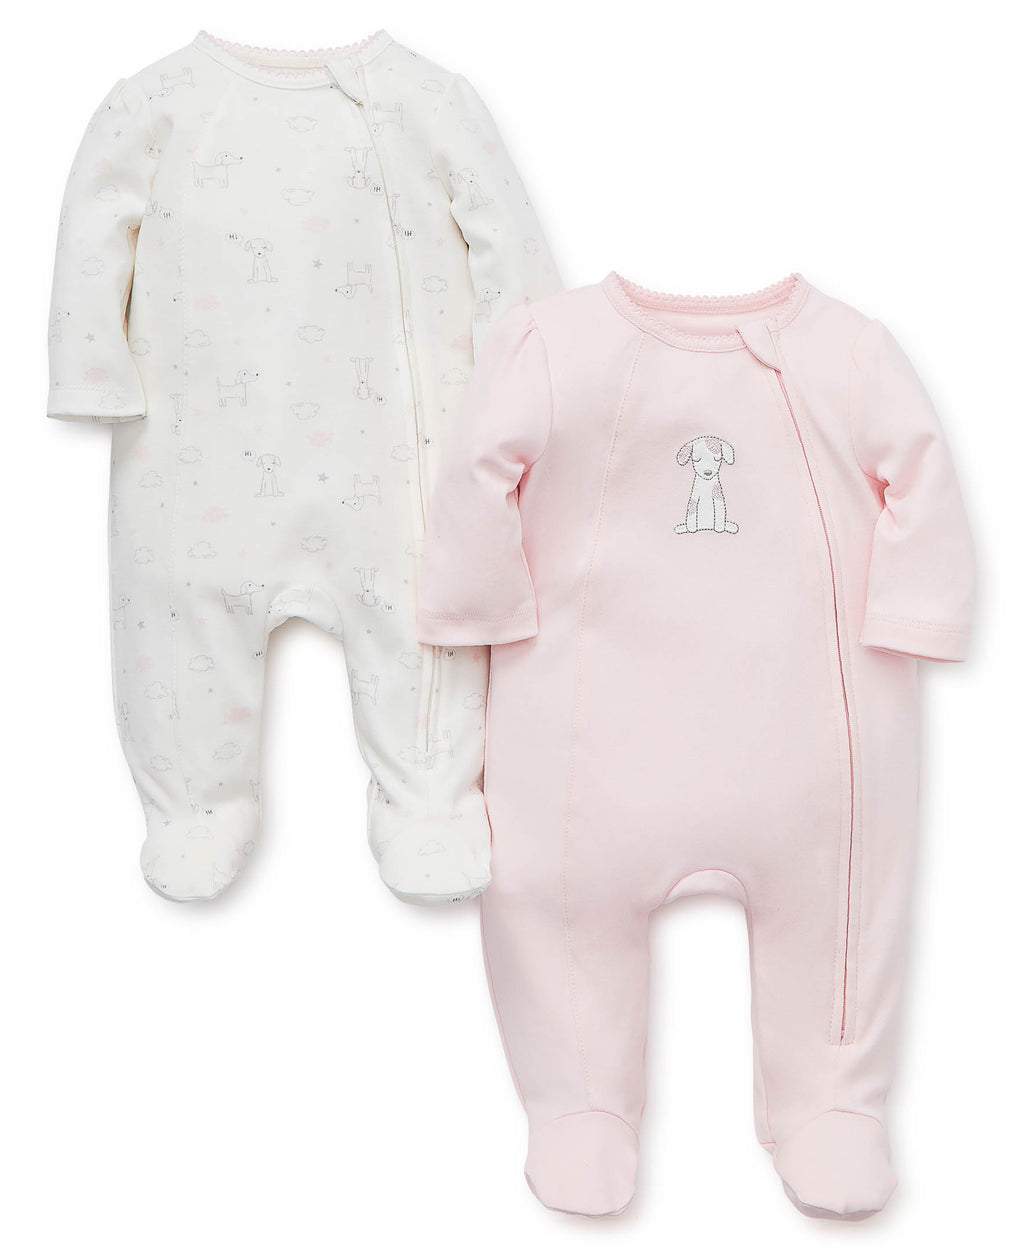 Puppy Love Footed One-Piece (2-pack)